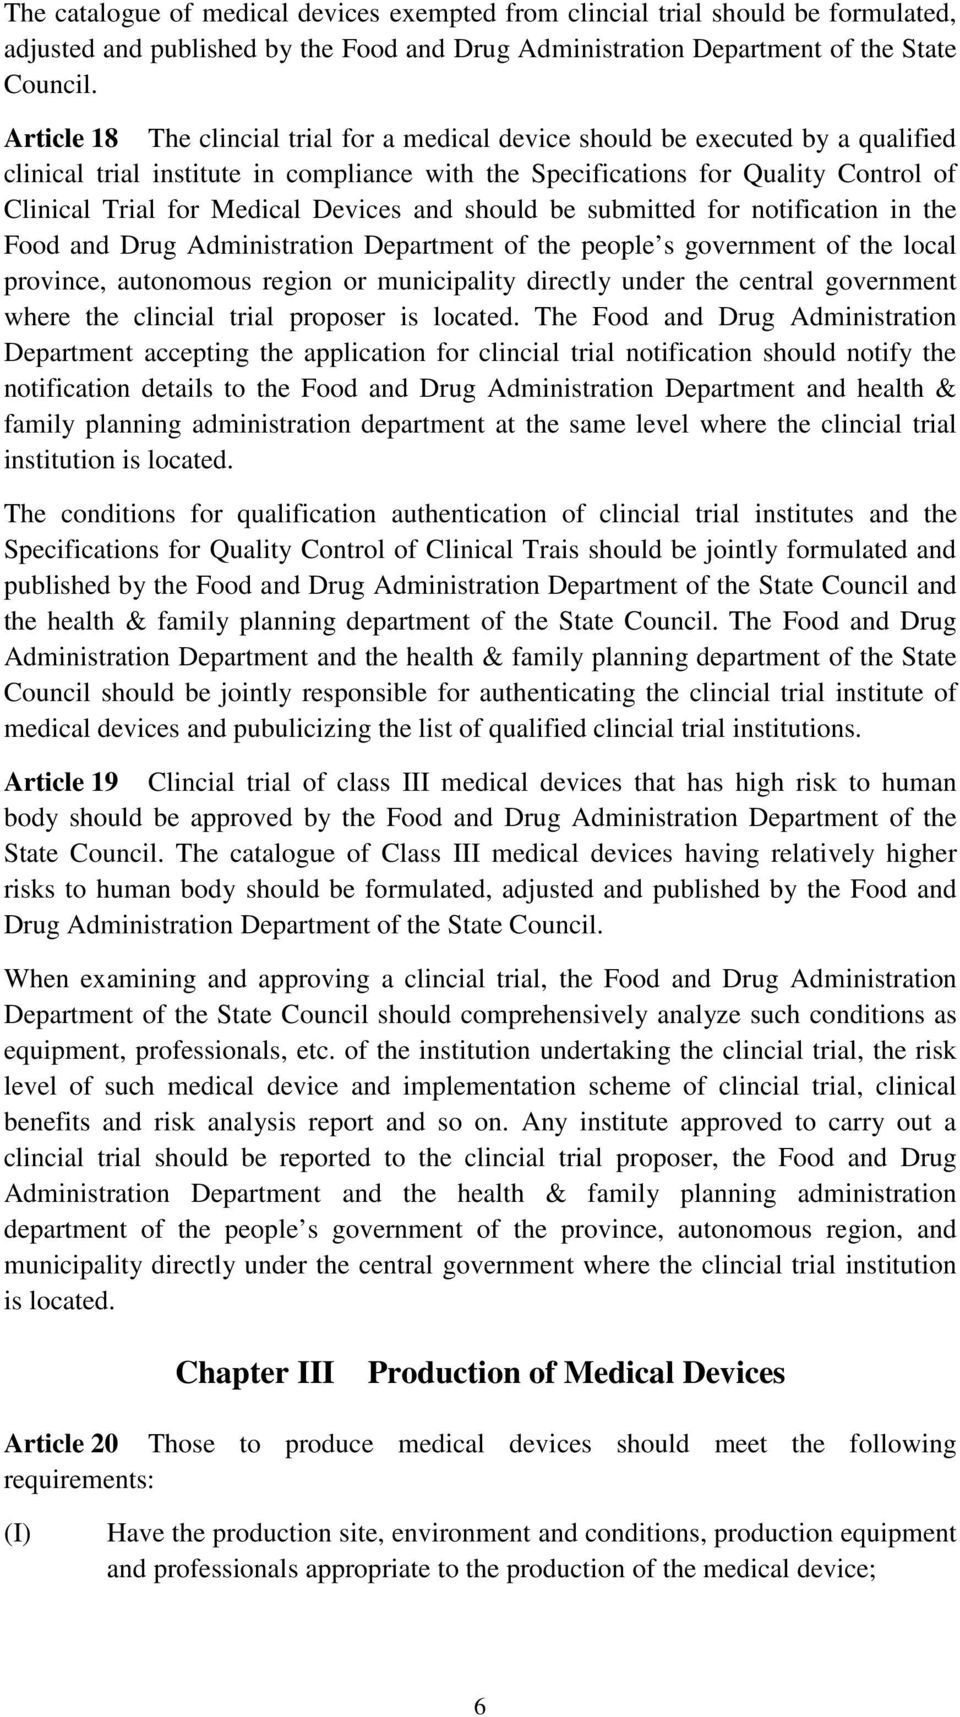 Devices and should be submitted for notification in the Food and Drug Administration Department of the people s government of the local province, autonomous region or municipality directly under the